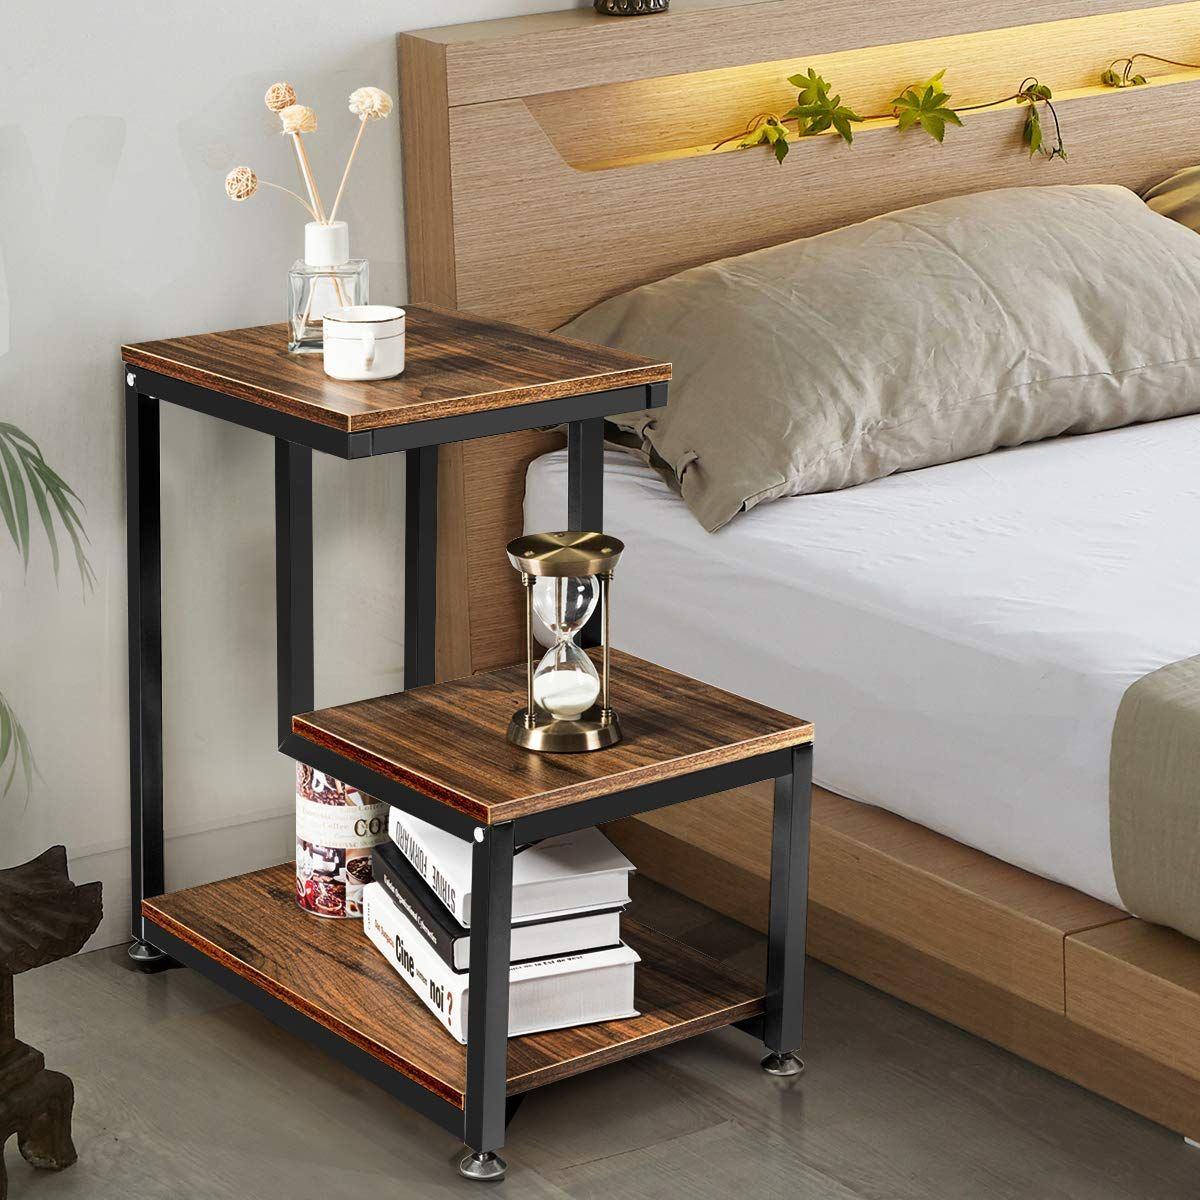 3 Tier Rustic Metal Frame Nightstand With Storage Shelf Living Room Side Table Chair Side Table Sofa End Tables